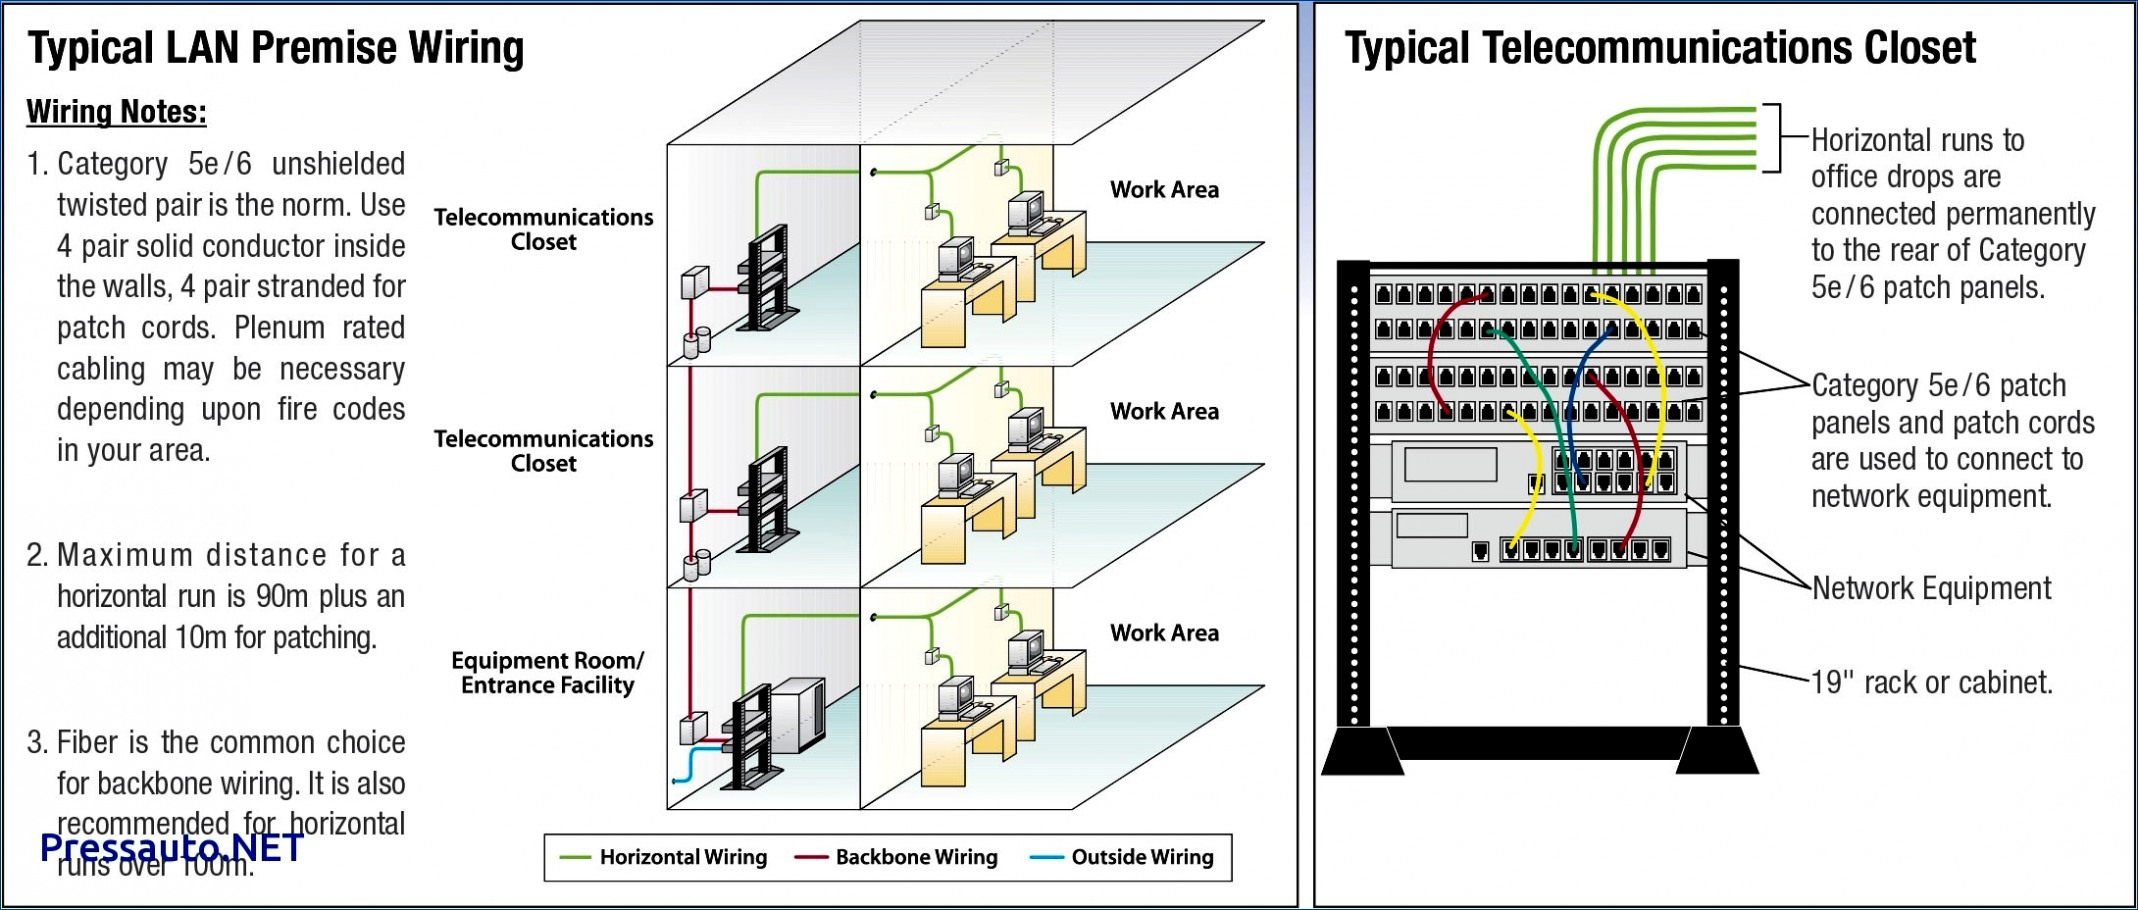 Fios Typical House Wiring Diagram - Trusted Wiring Diagram - Fios Wiring Diagram